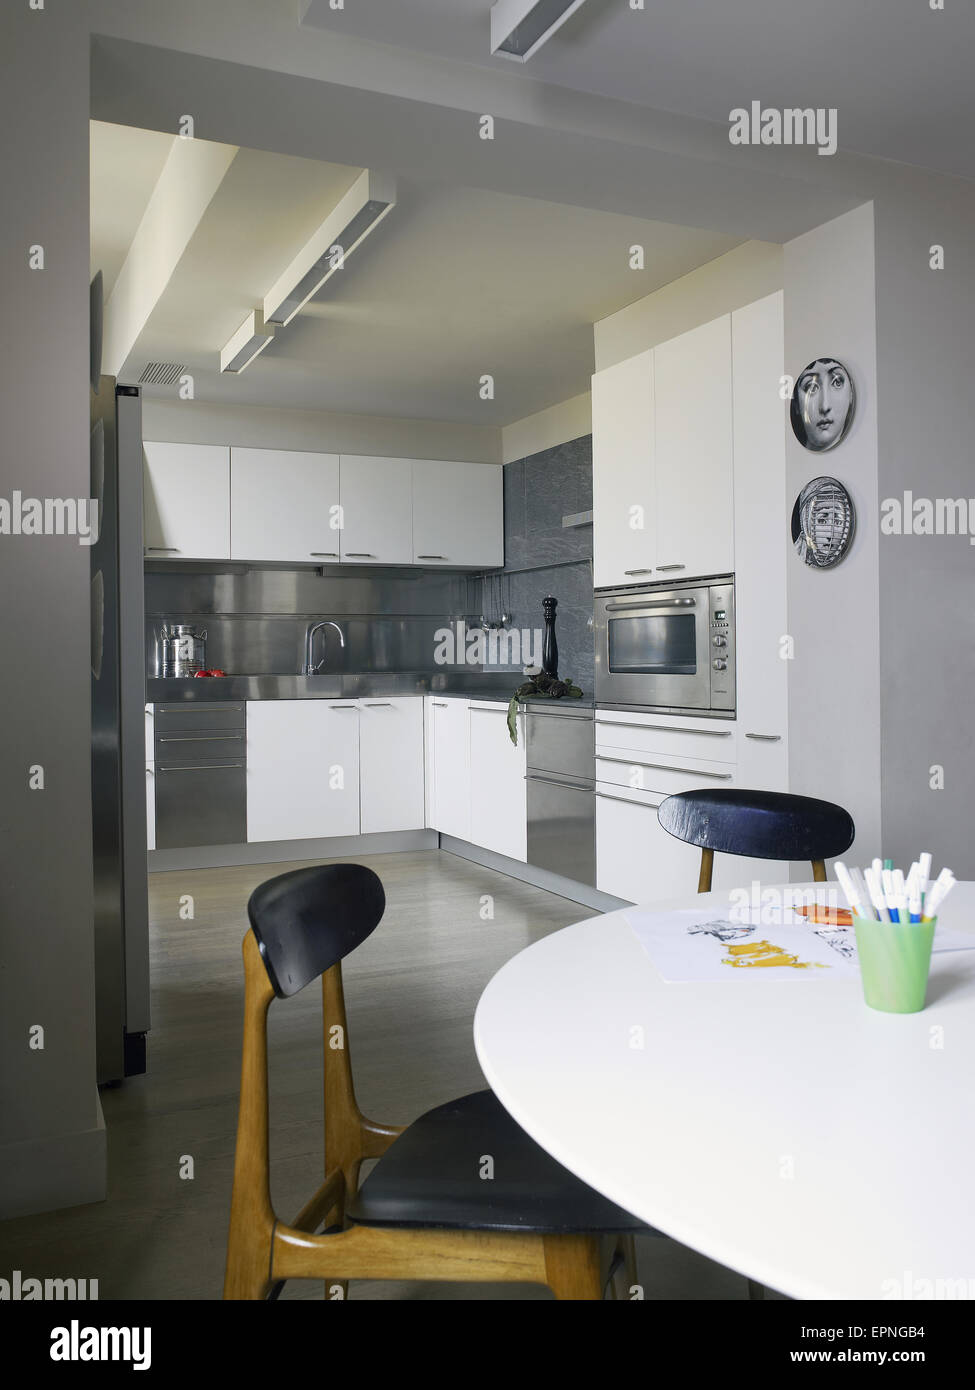 interior of modern kitchen with a table and chairs in front two fornasetti plates hanged